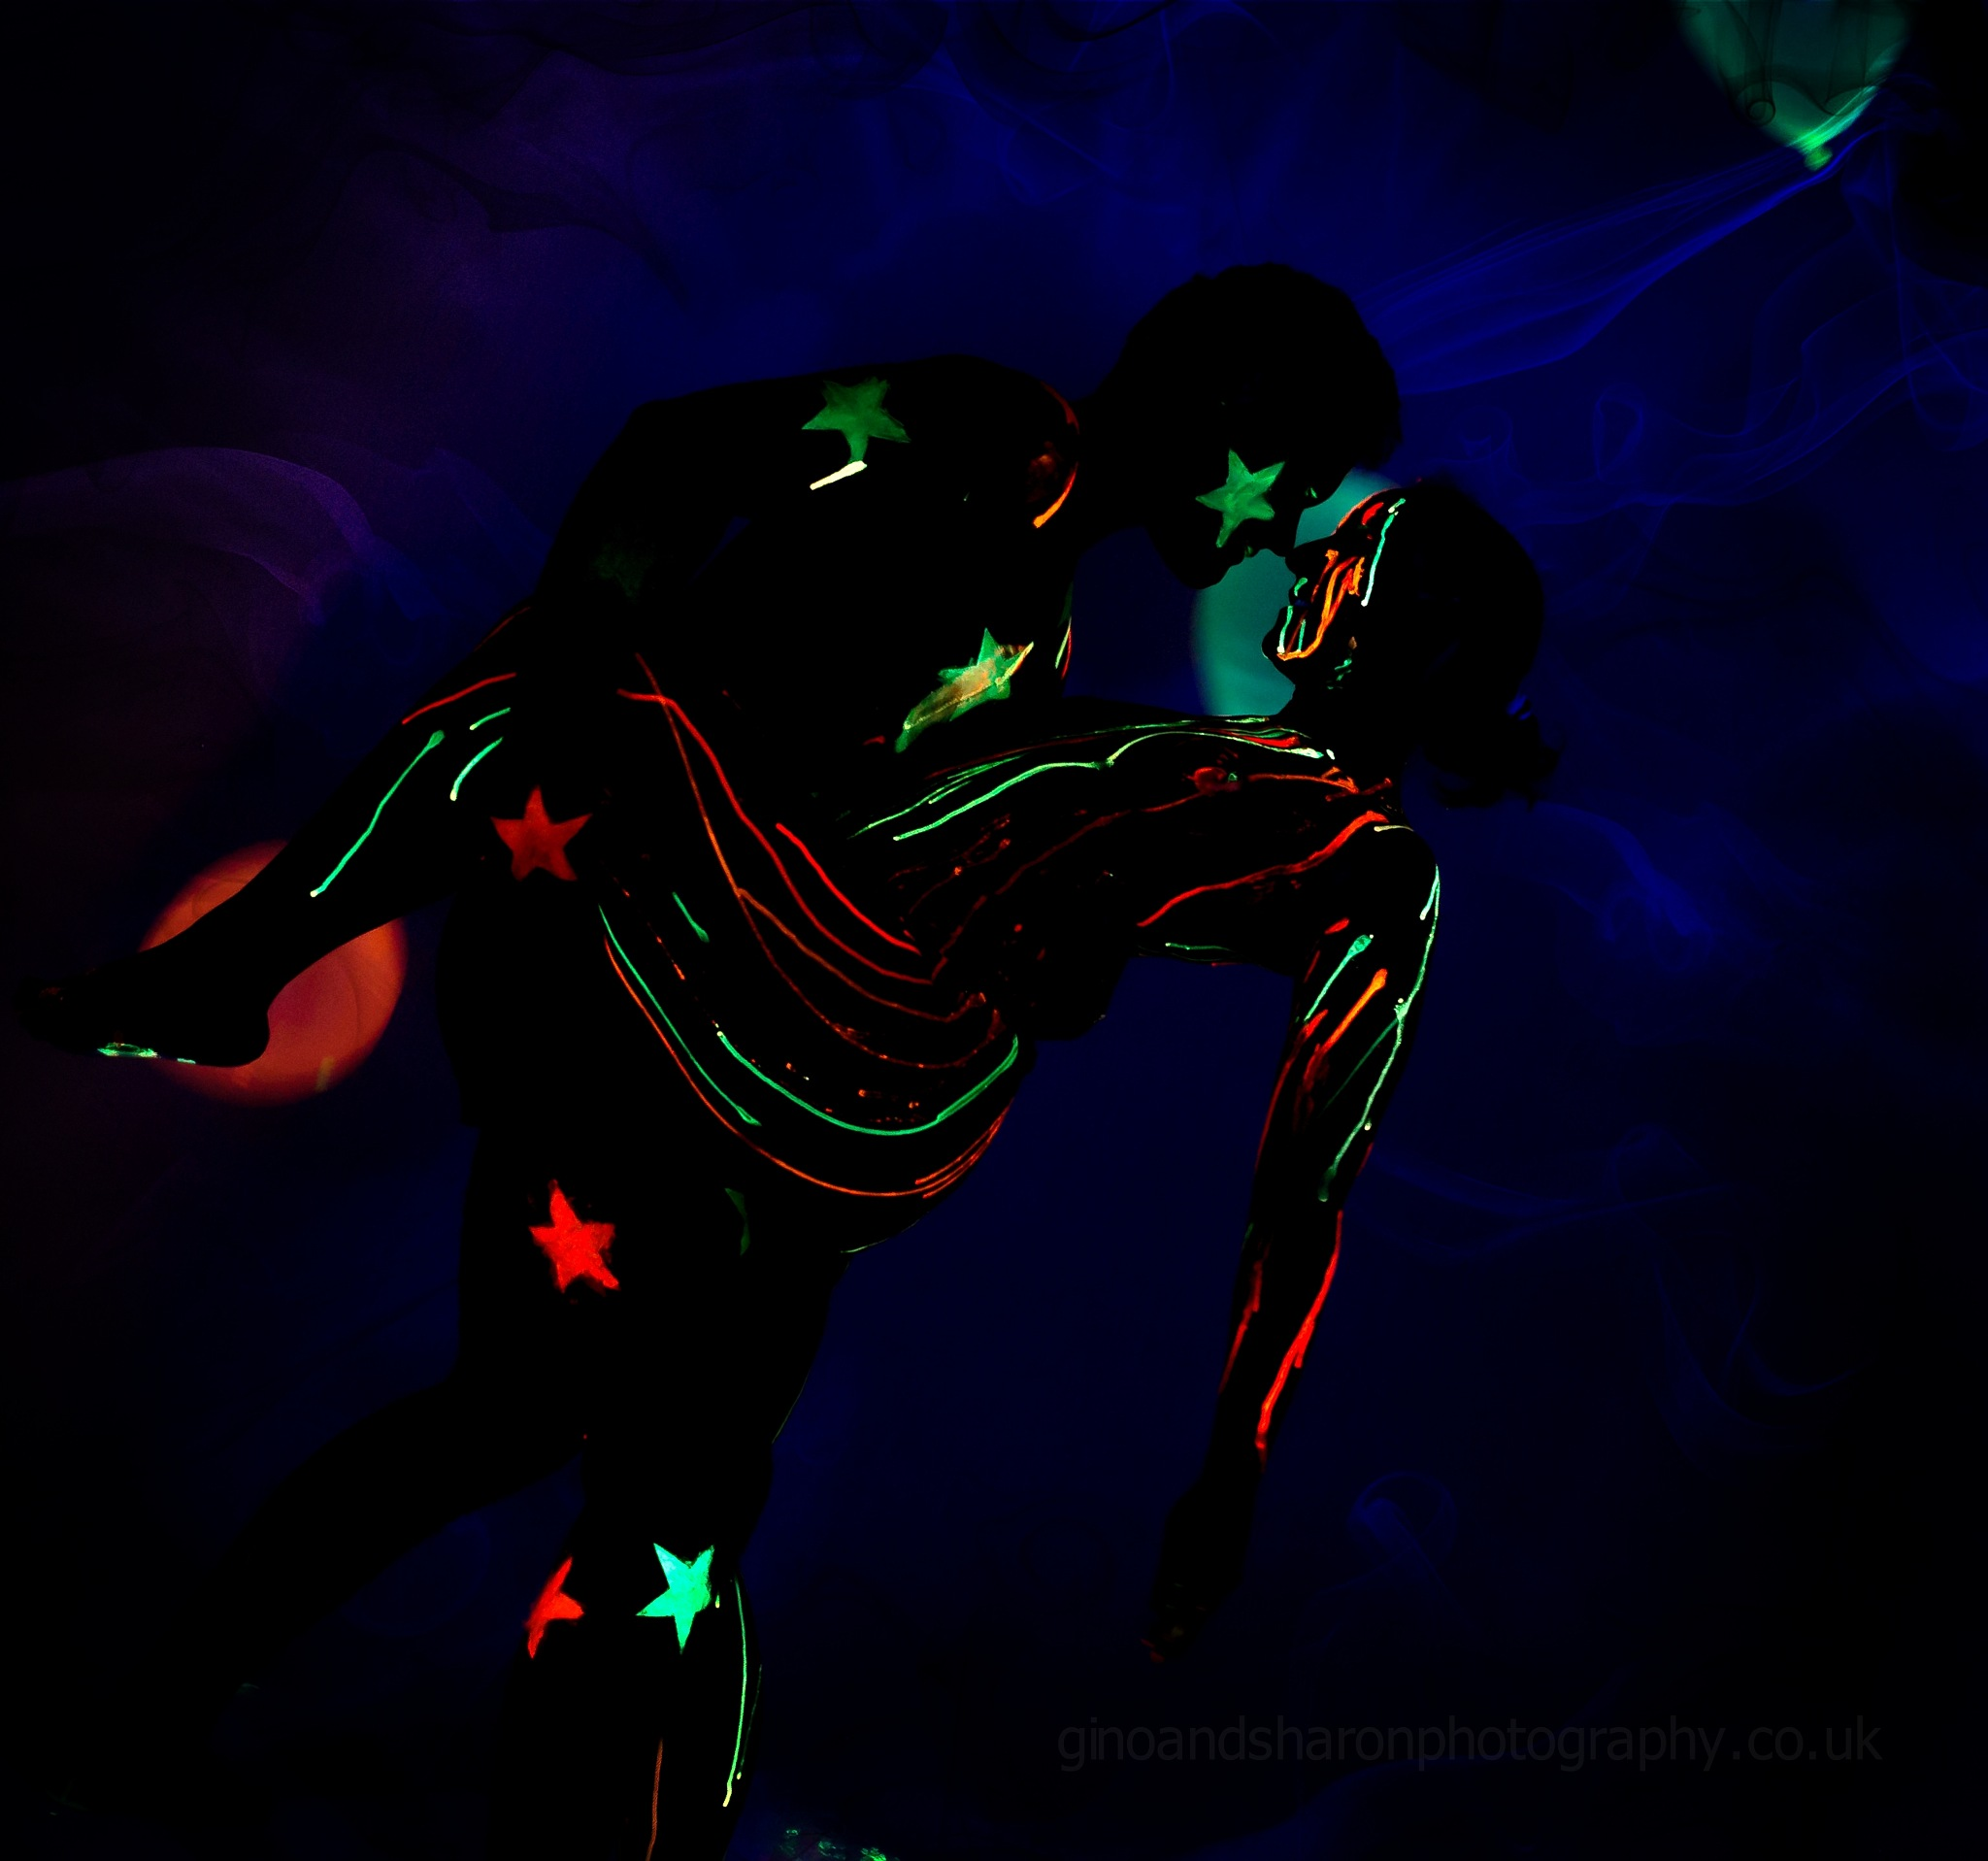 UV lights and Body Paint by Photographer Gino Cinganelli